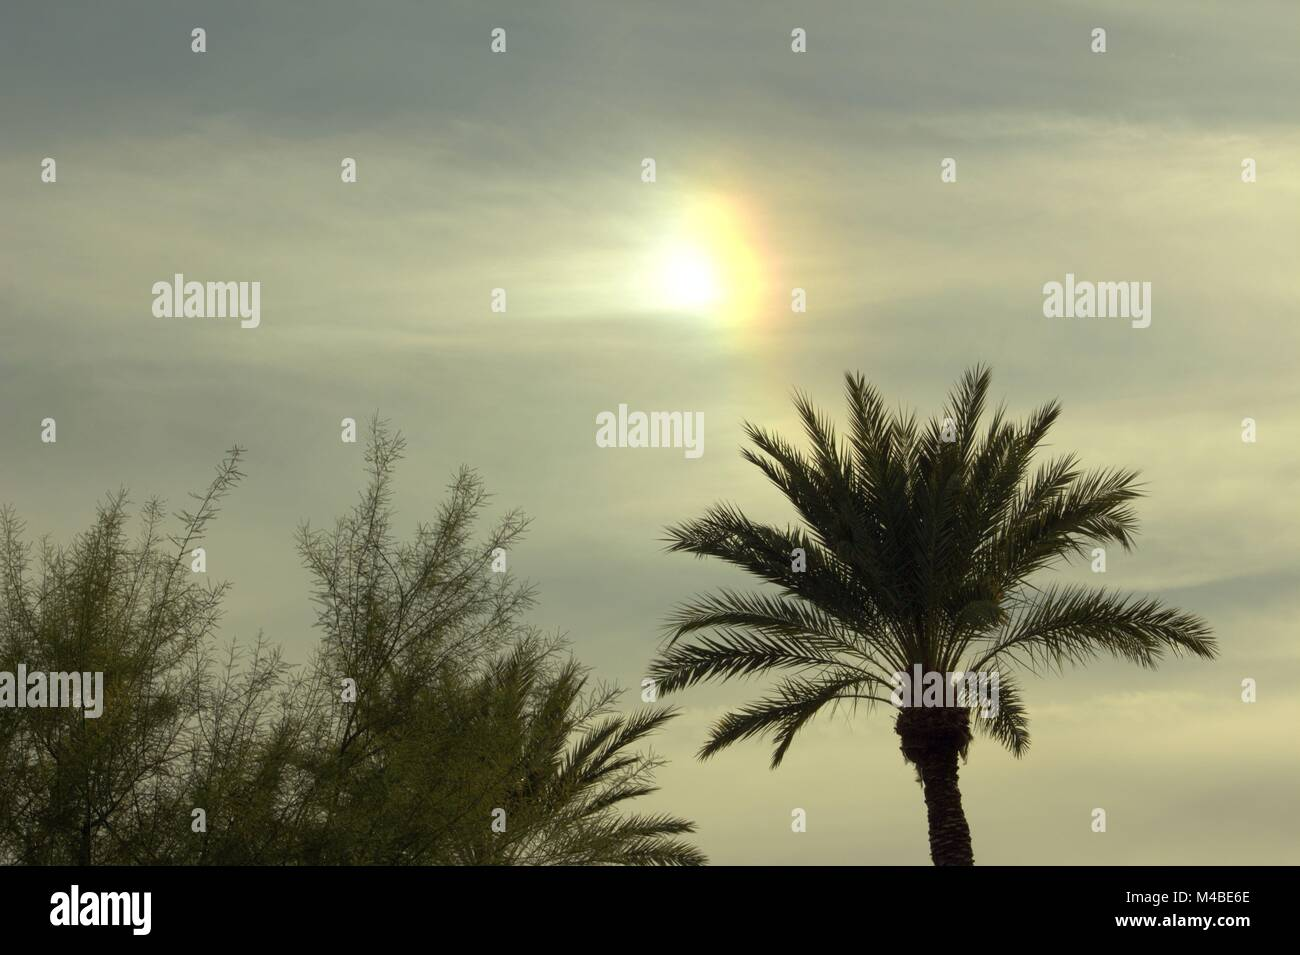 A Sun Dog Over A Palm Tree in Tempe, Arizona - Stock Image